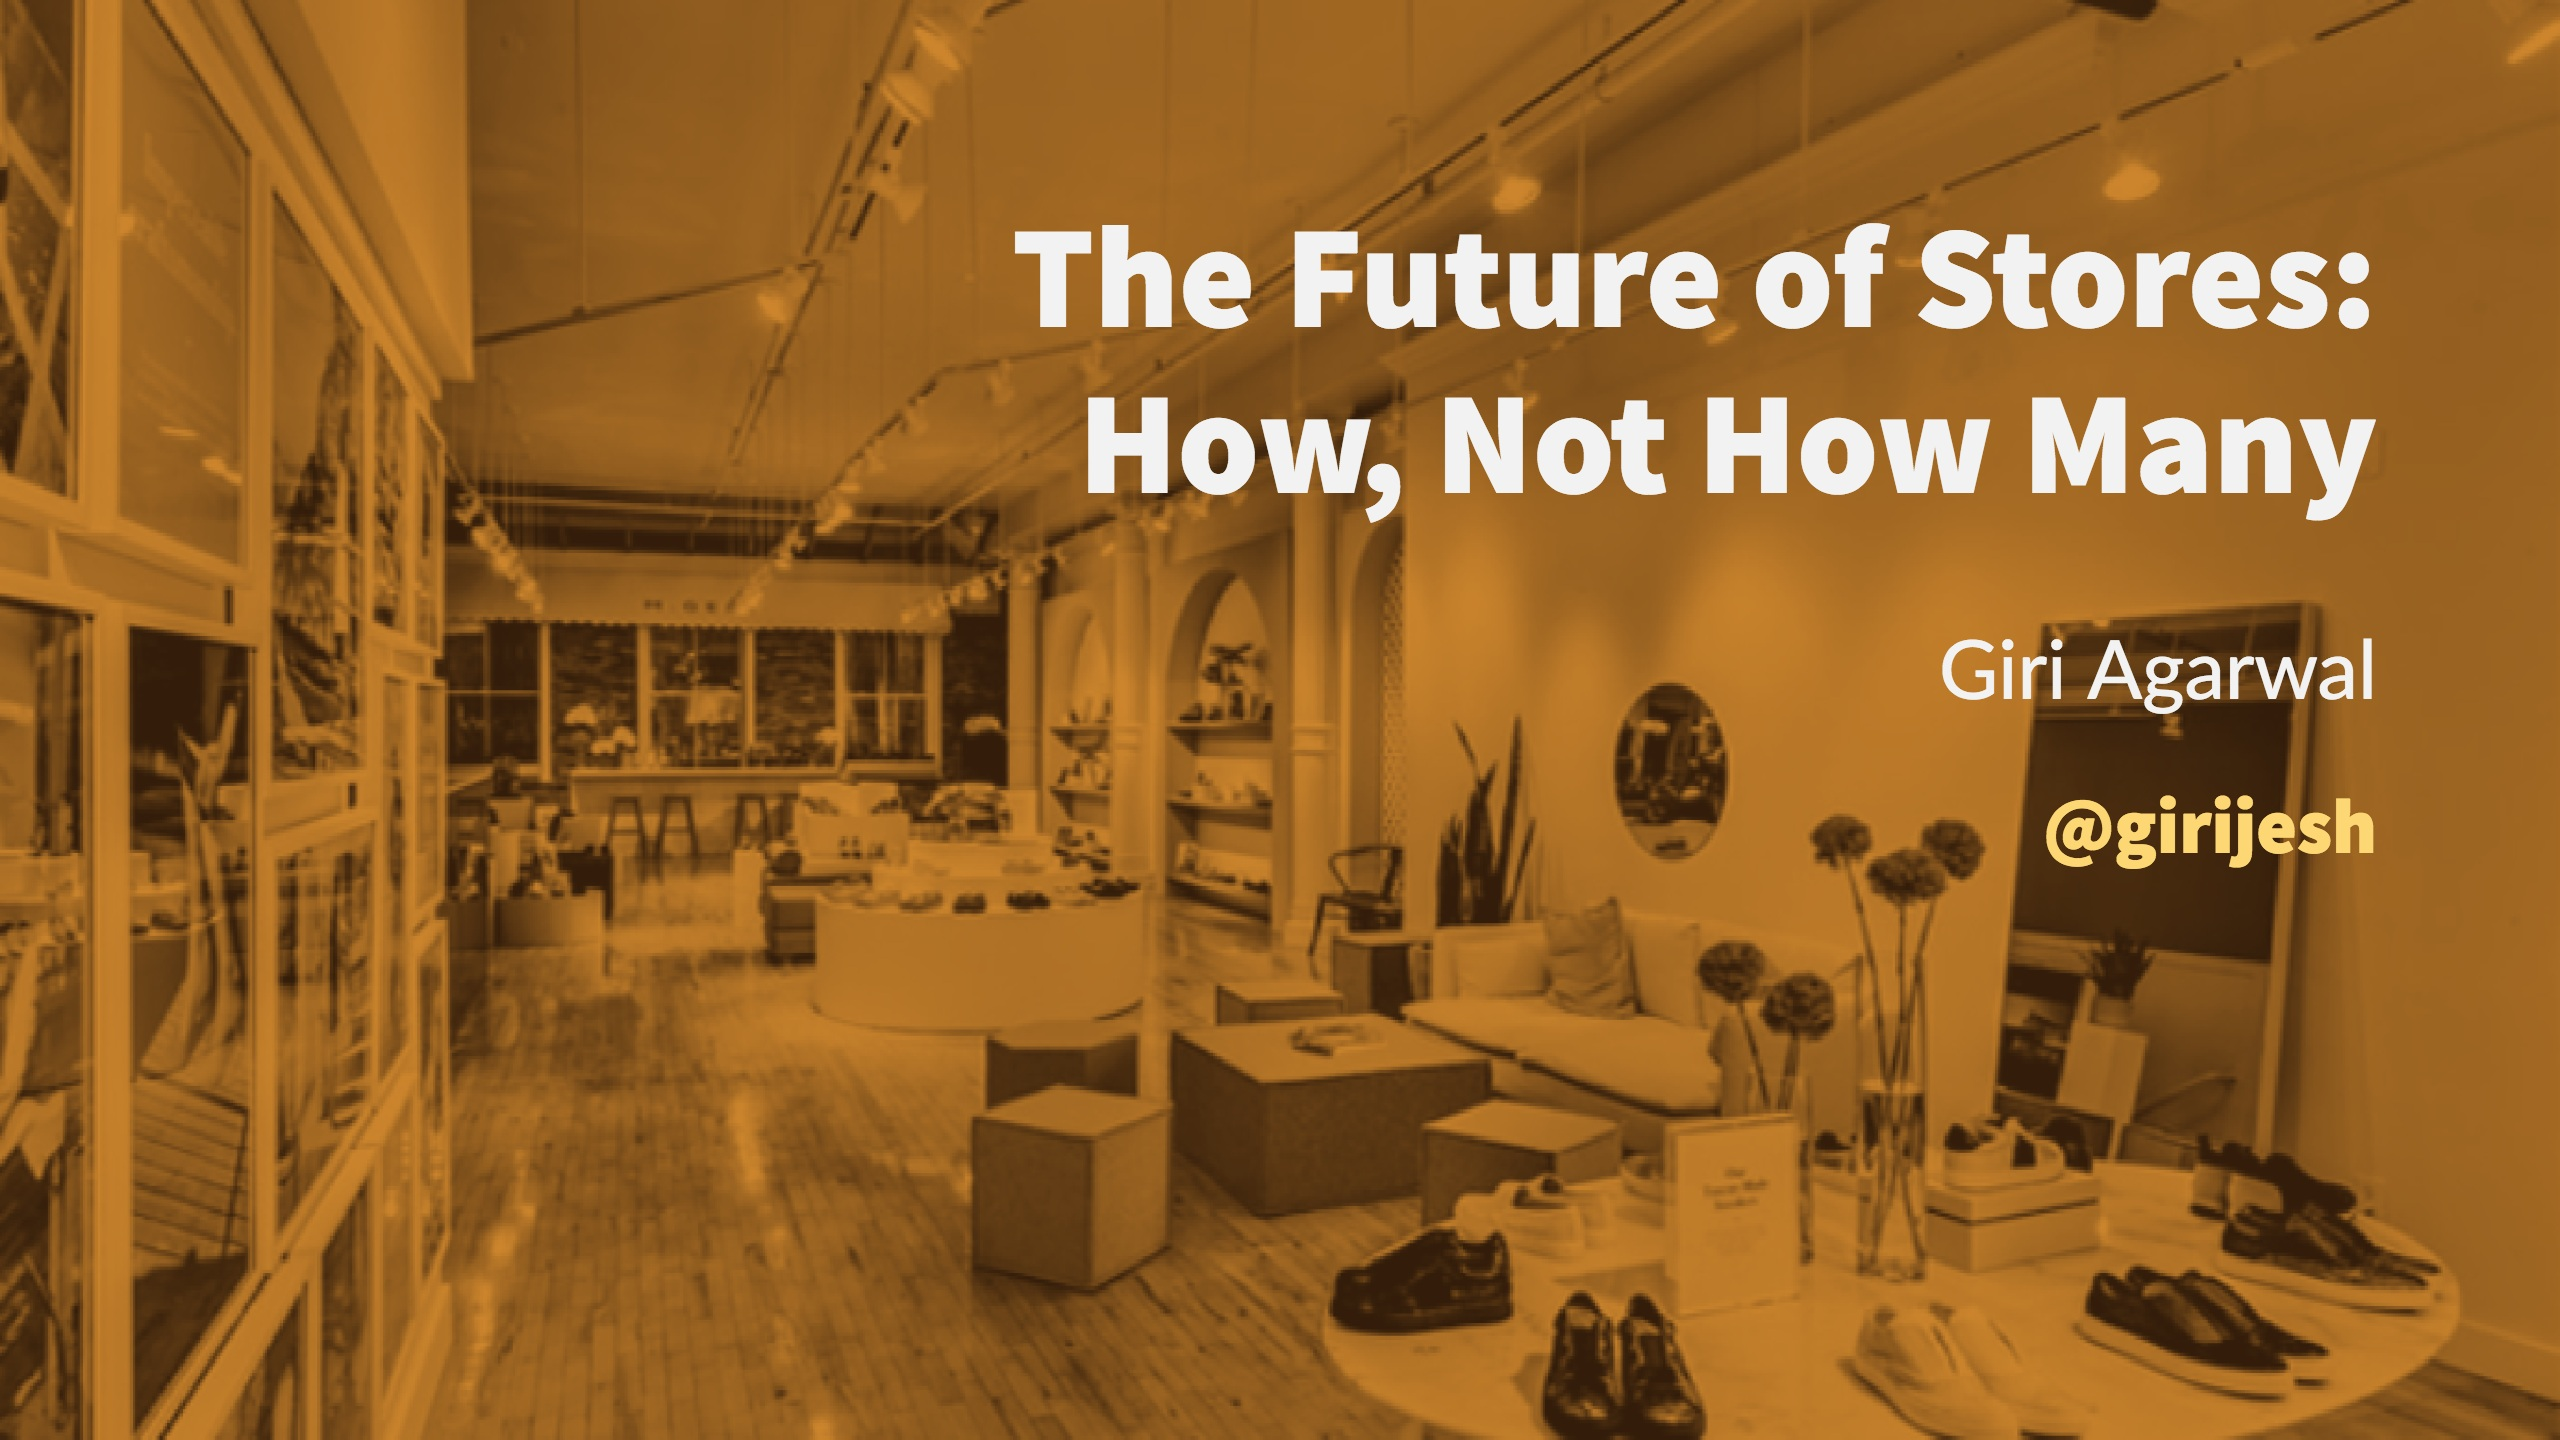 The Future of Stores - How, Not How Many